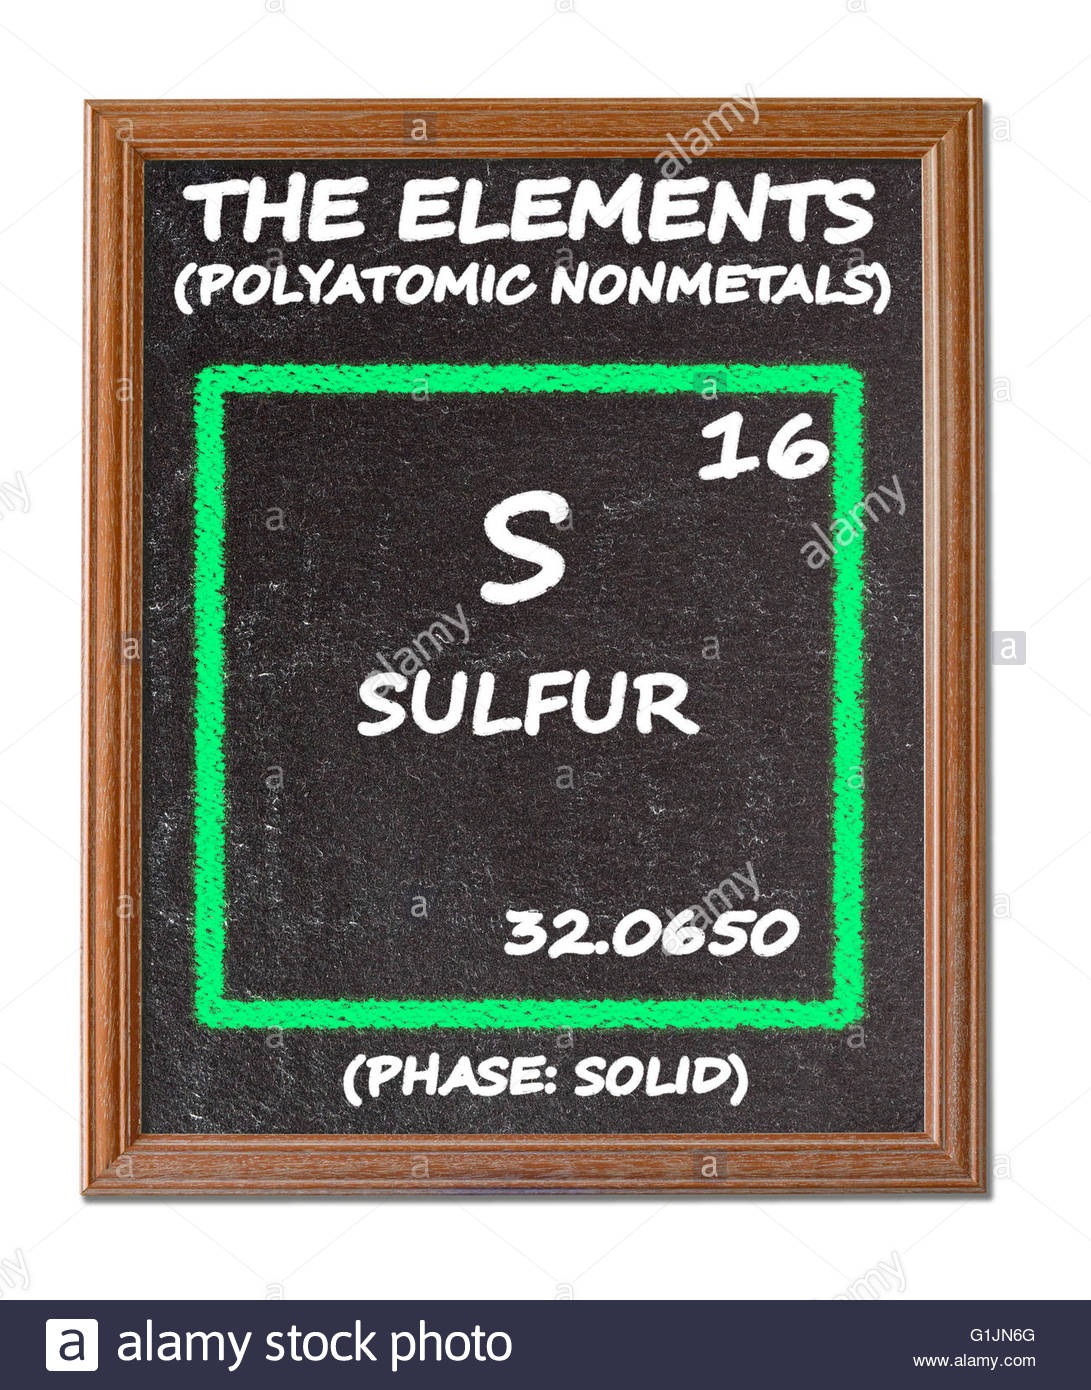 Sulfur details from the periodic table stock photo royalty free stock photo sulfur details from the periodic table gamestrikefo Choice Image